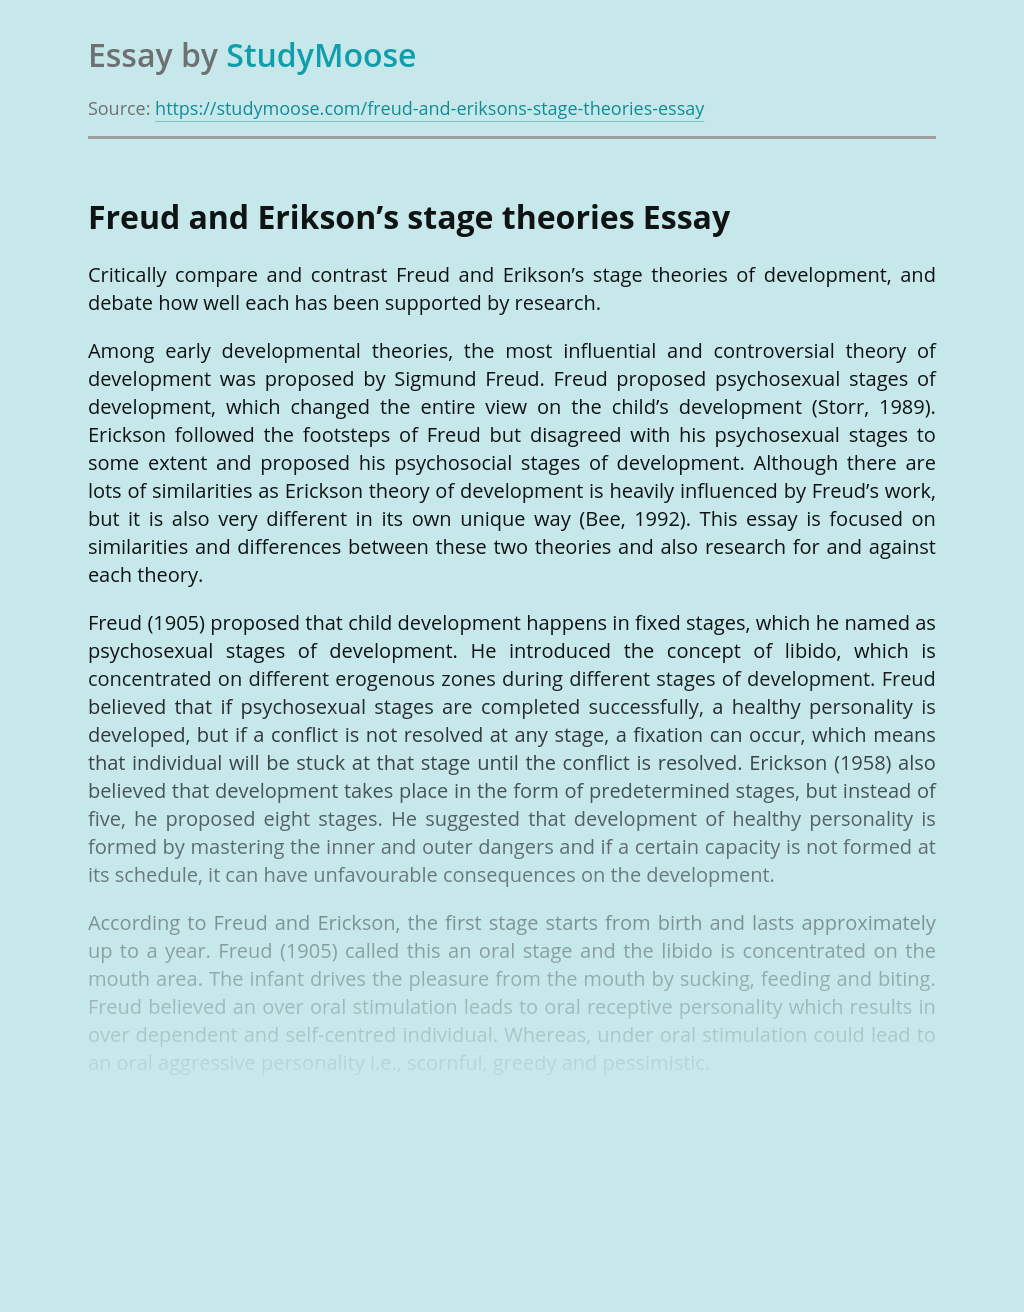 Freud and Erikson's stage theories